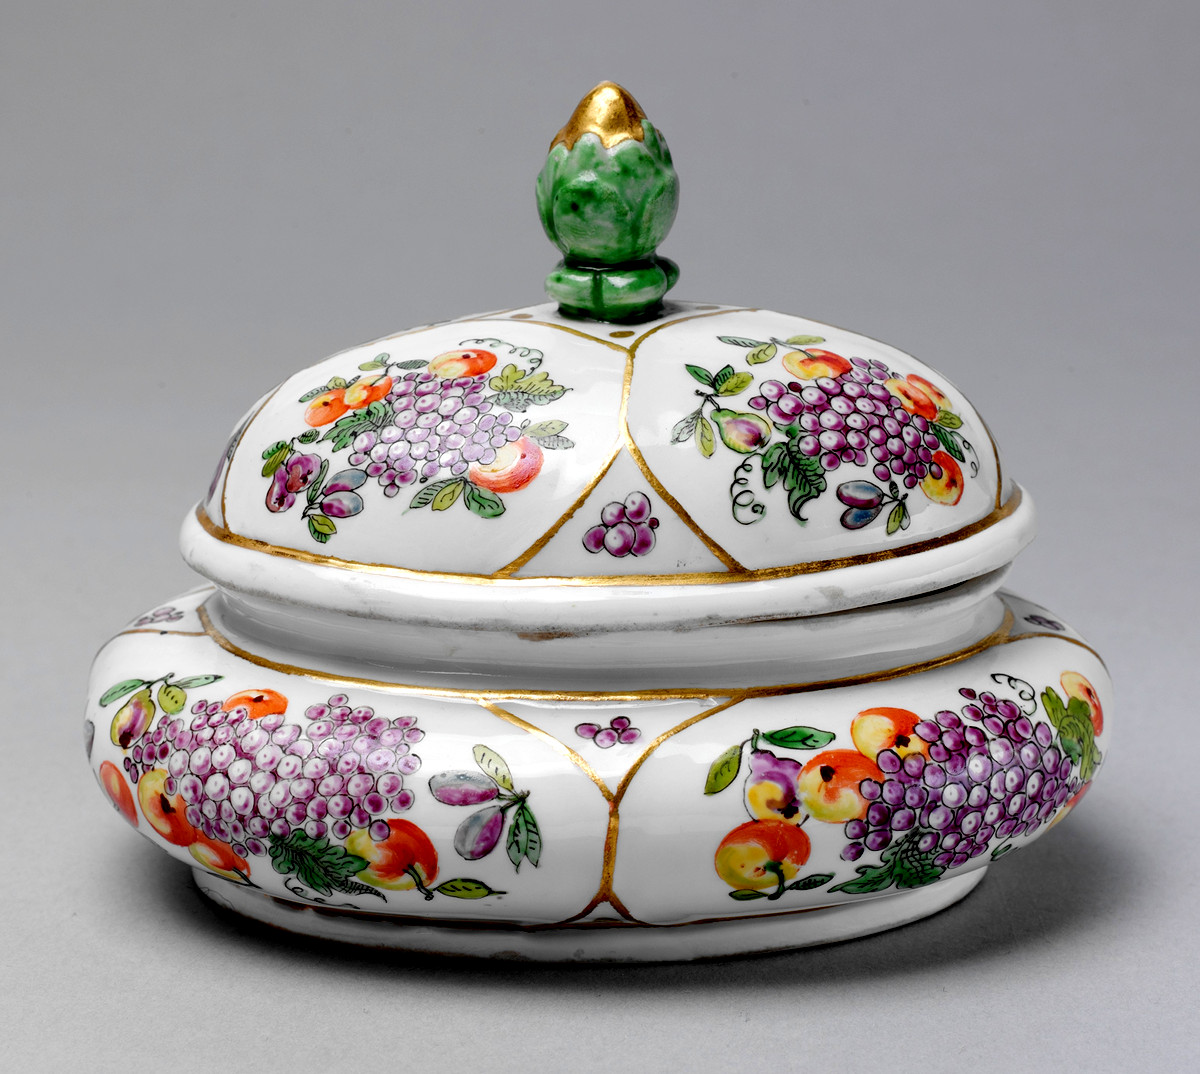 1730. Sugar Box. Austrian. Hard-paste porcelain. metmuseum